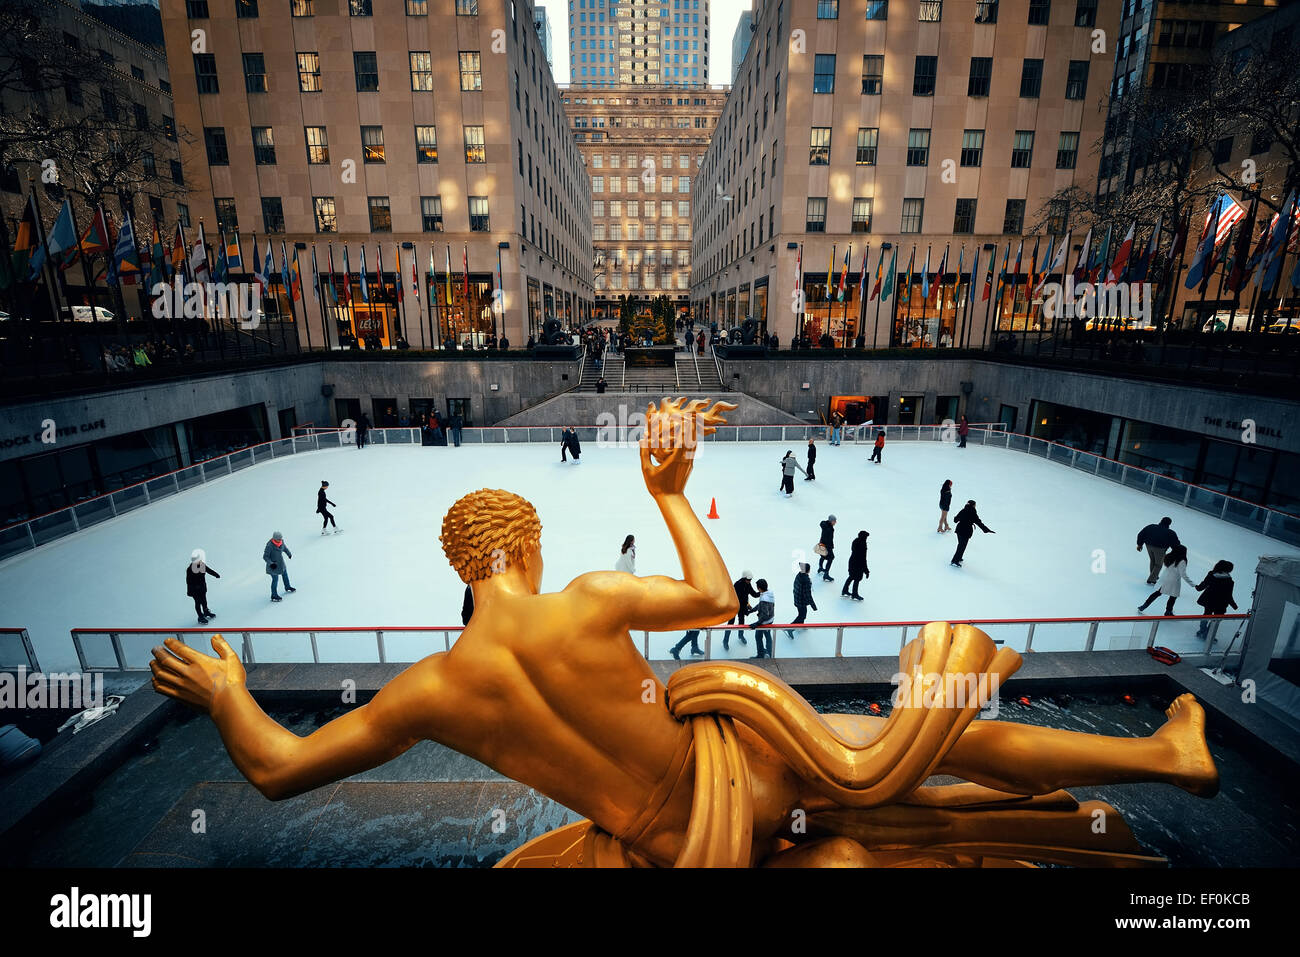 NEW YORK CITY, NY - MAR 30: Rockefeller Plaza ice rink on March 30, 2014 in New York City. Declared a National Historic Stock Photo